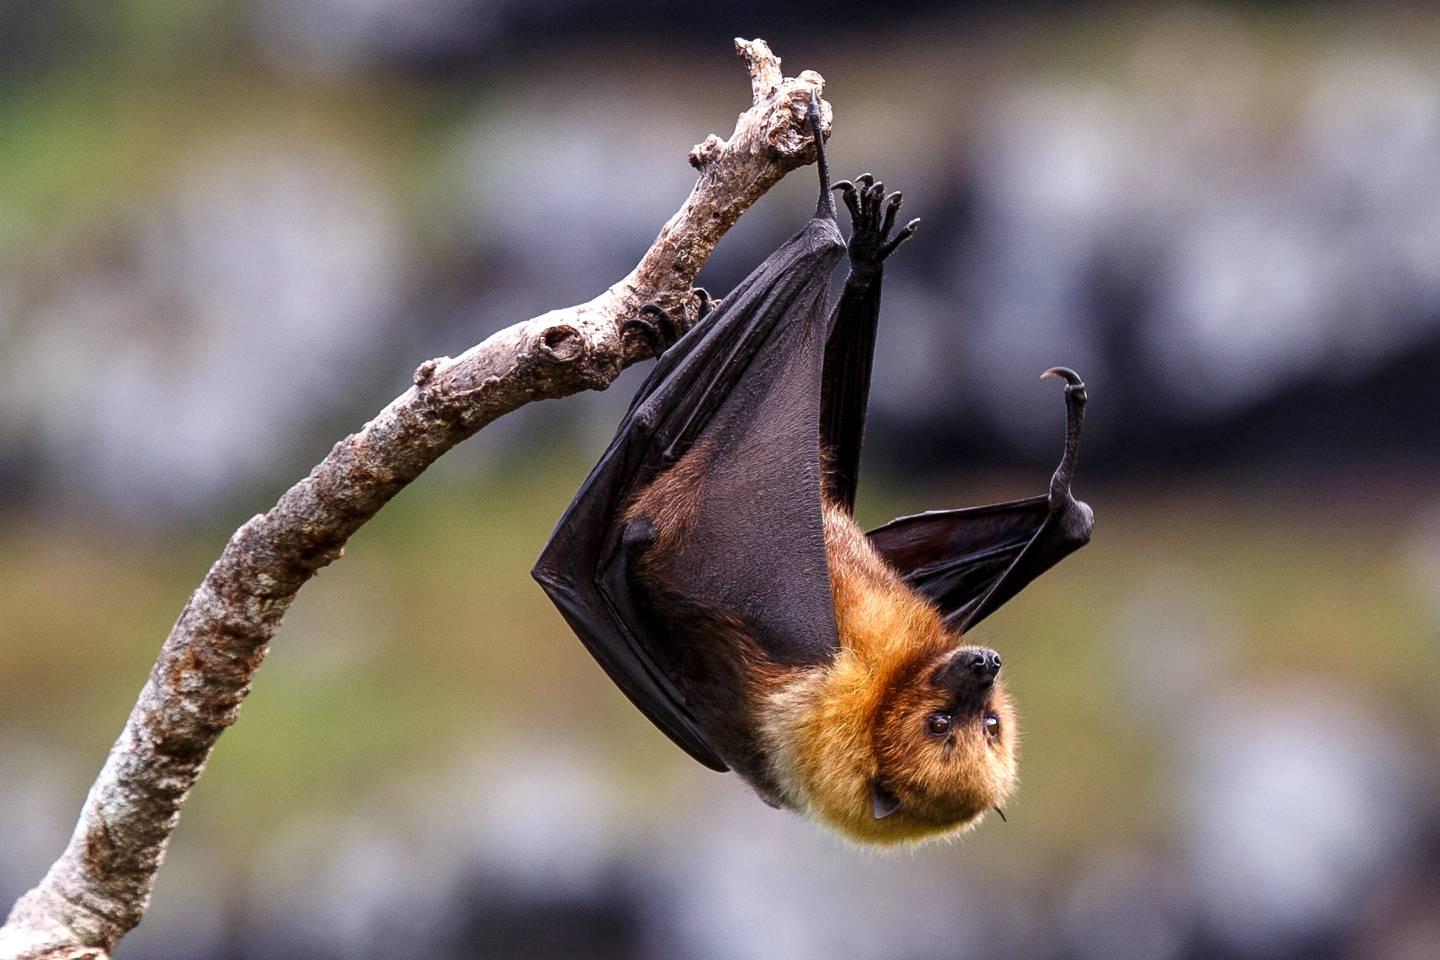 """This handout photo released on May 21, 2018 by the Mauritian Wildlife Foundation shows the Rodrigues Fruit Bat on Rodrigues in the Western Indian Ocean on April 23, 2018.  Animal and plant species are vanishing -- sometimes before we know they exist -- at an accelerating pace, but conservationists are pushing back against the juggernaut of mass extinction. From captive breeding to satellite tracking; restoring habitats to removing predators; shaming multinationals to nursing baby pandas and orangutans -- in all these ways, scientists and other have given doomed creatures a second chance.  / AFP PHOTO / MAURITIAN WILDLIFE FOUNDATION / Jacques de Speville / RESTRICTED TO EDITORIAL USE - MANDATORY CREDIT """"AFP PHOTO / MAURITIAN WILDLIFE FOUNDATION/JACQUES DE SPEVILLE"""" - NO MARKETING NO ADVERTISING CAMPAIGNS - DISTRIBUTED AS A SERVICE TO CLIENTS"""